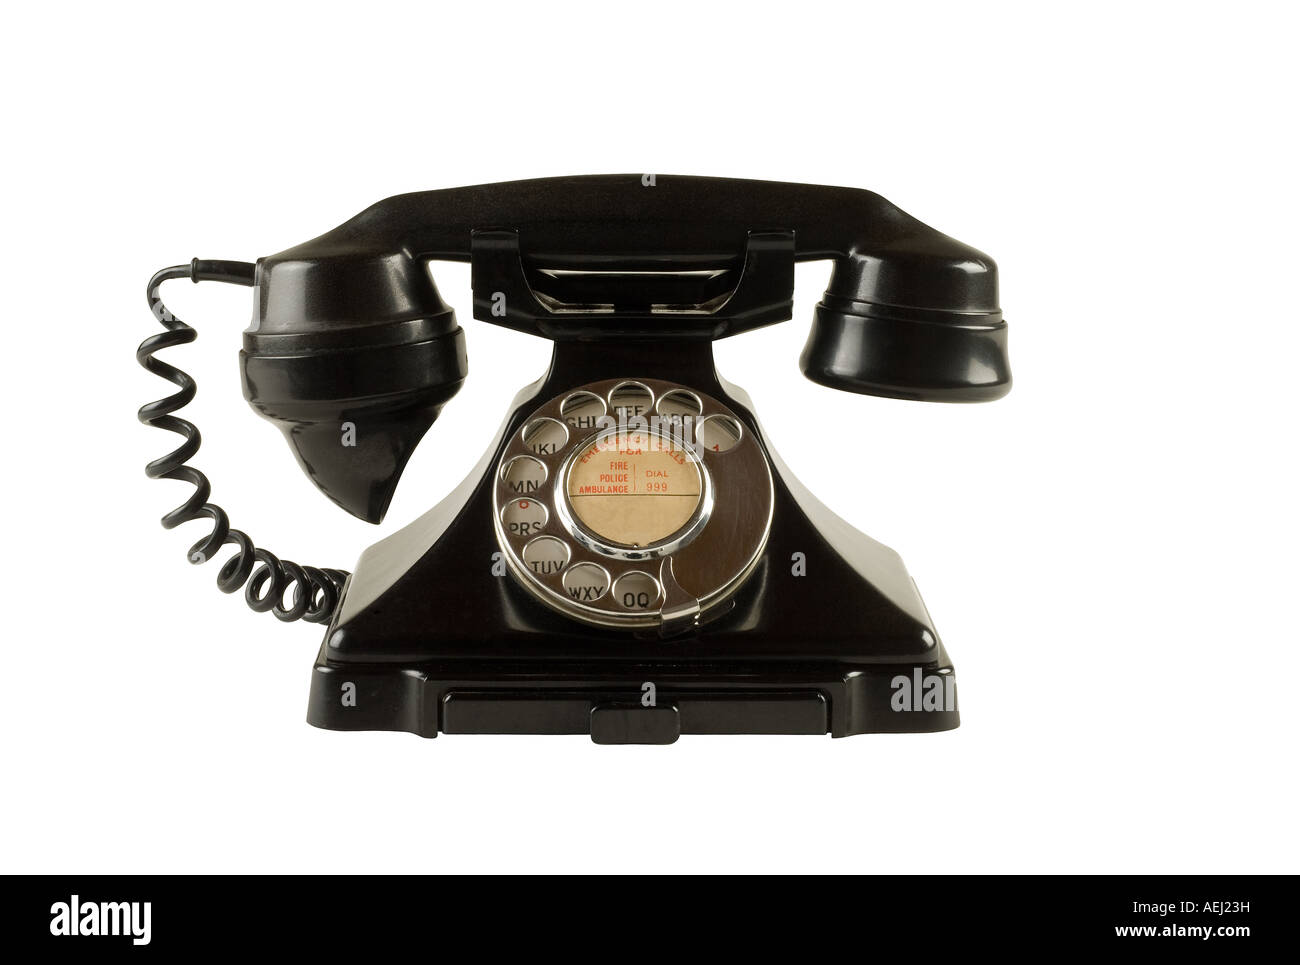 Antique black dial telephone - Stock Image